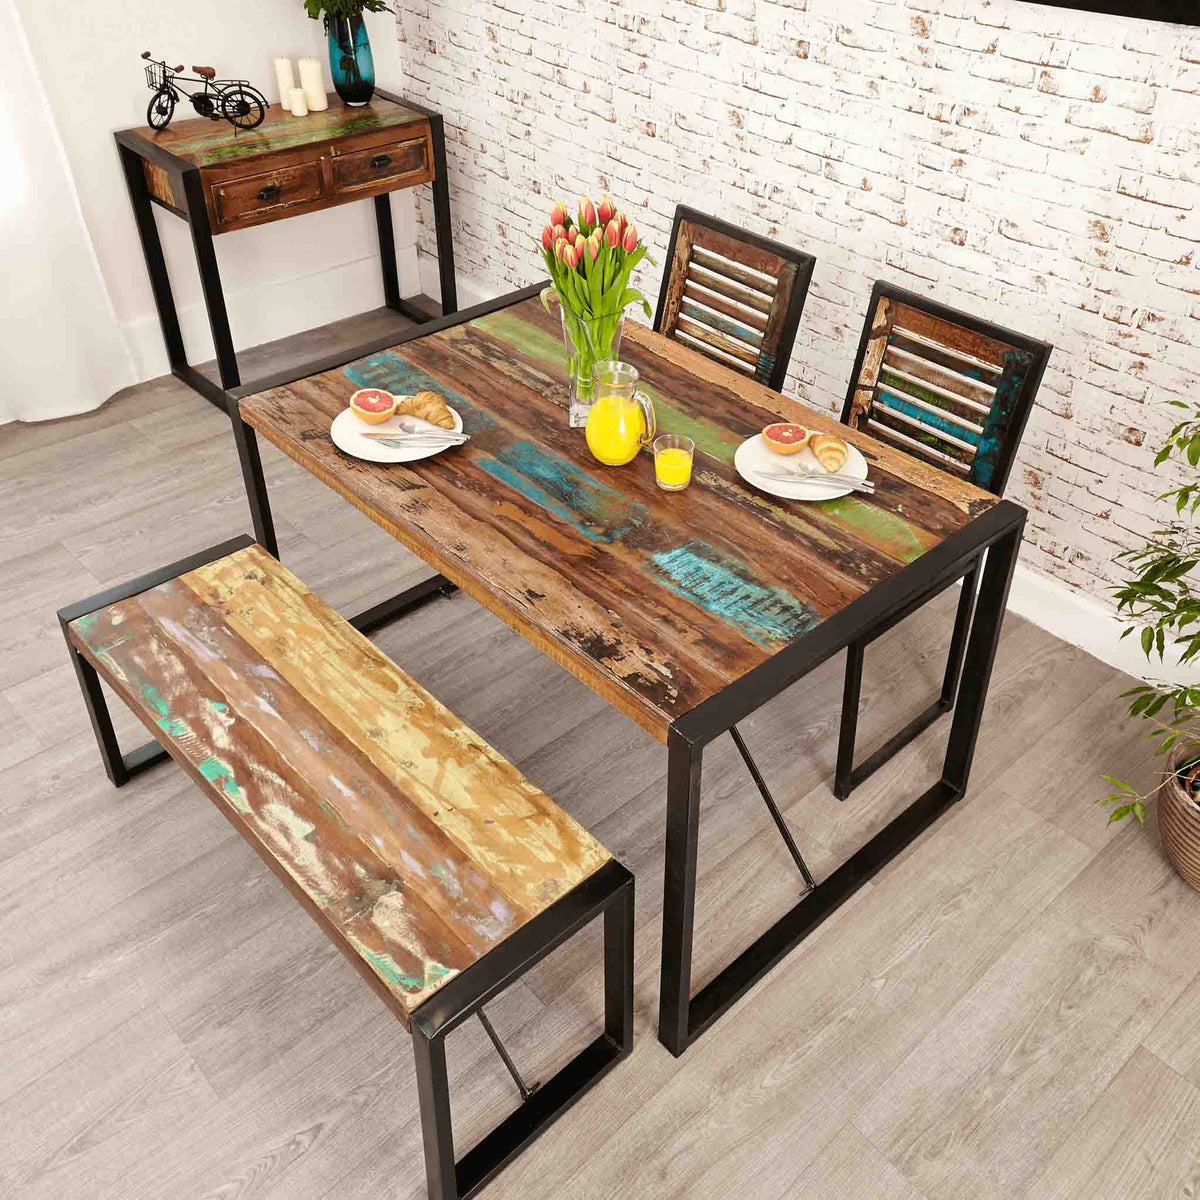 The Urban Chic Industrial Reclaimed Wood Small Kitchen Table from Roseland Furniture